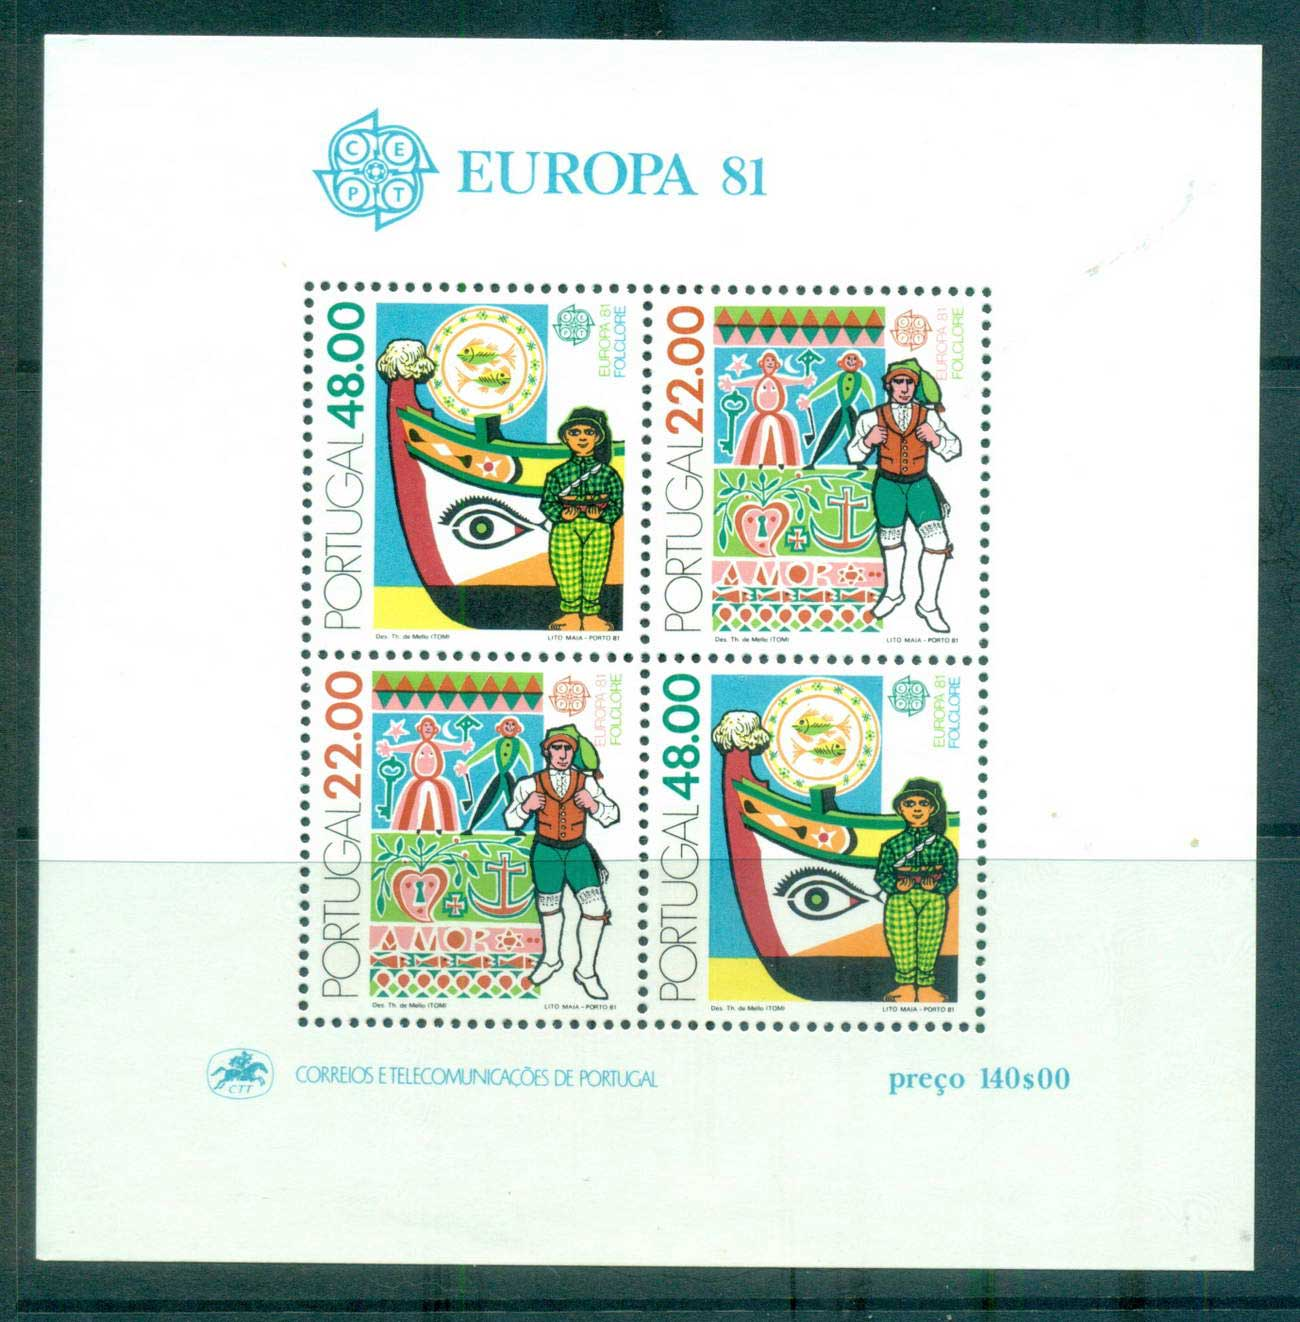 Portugal 1981 Europa, Folklore MS MUH lot65816